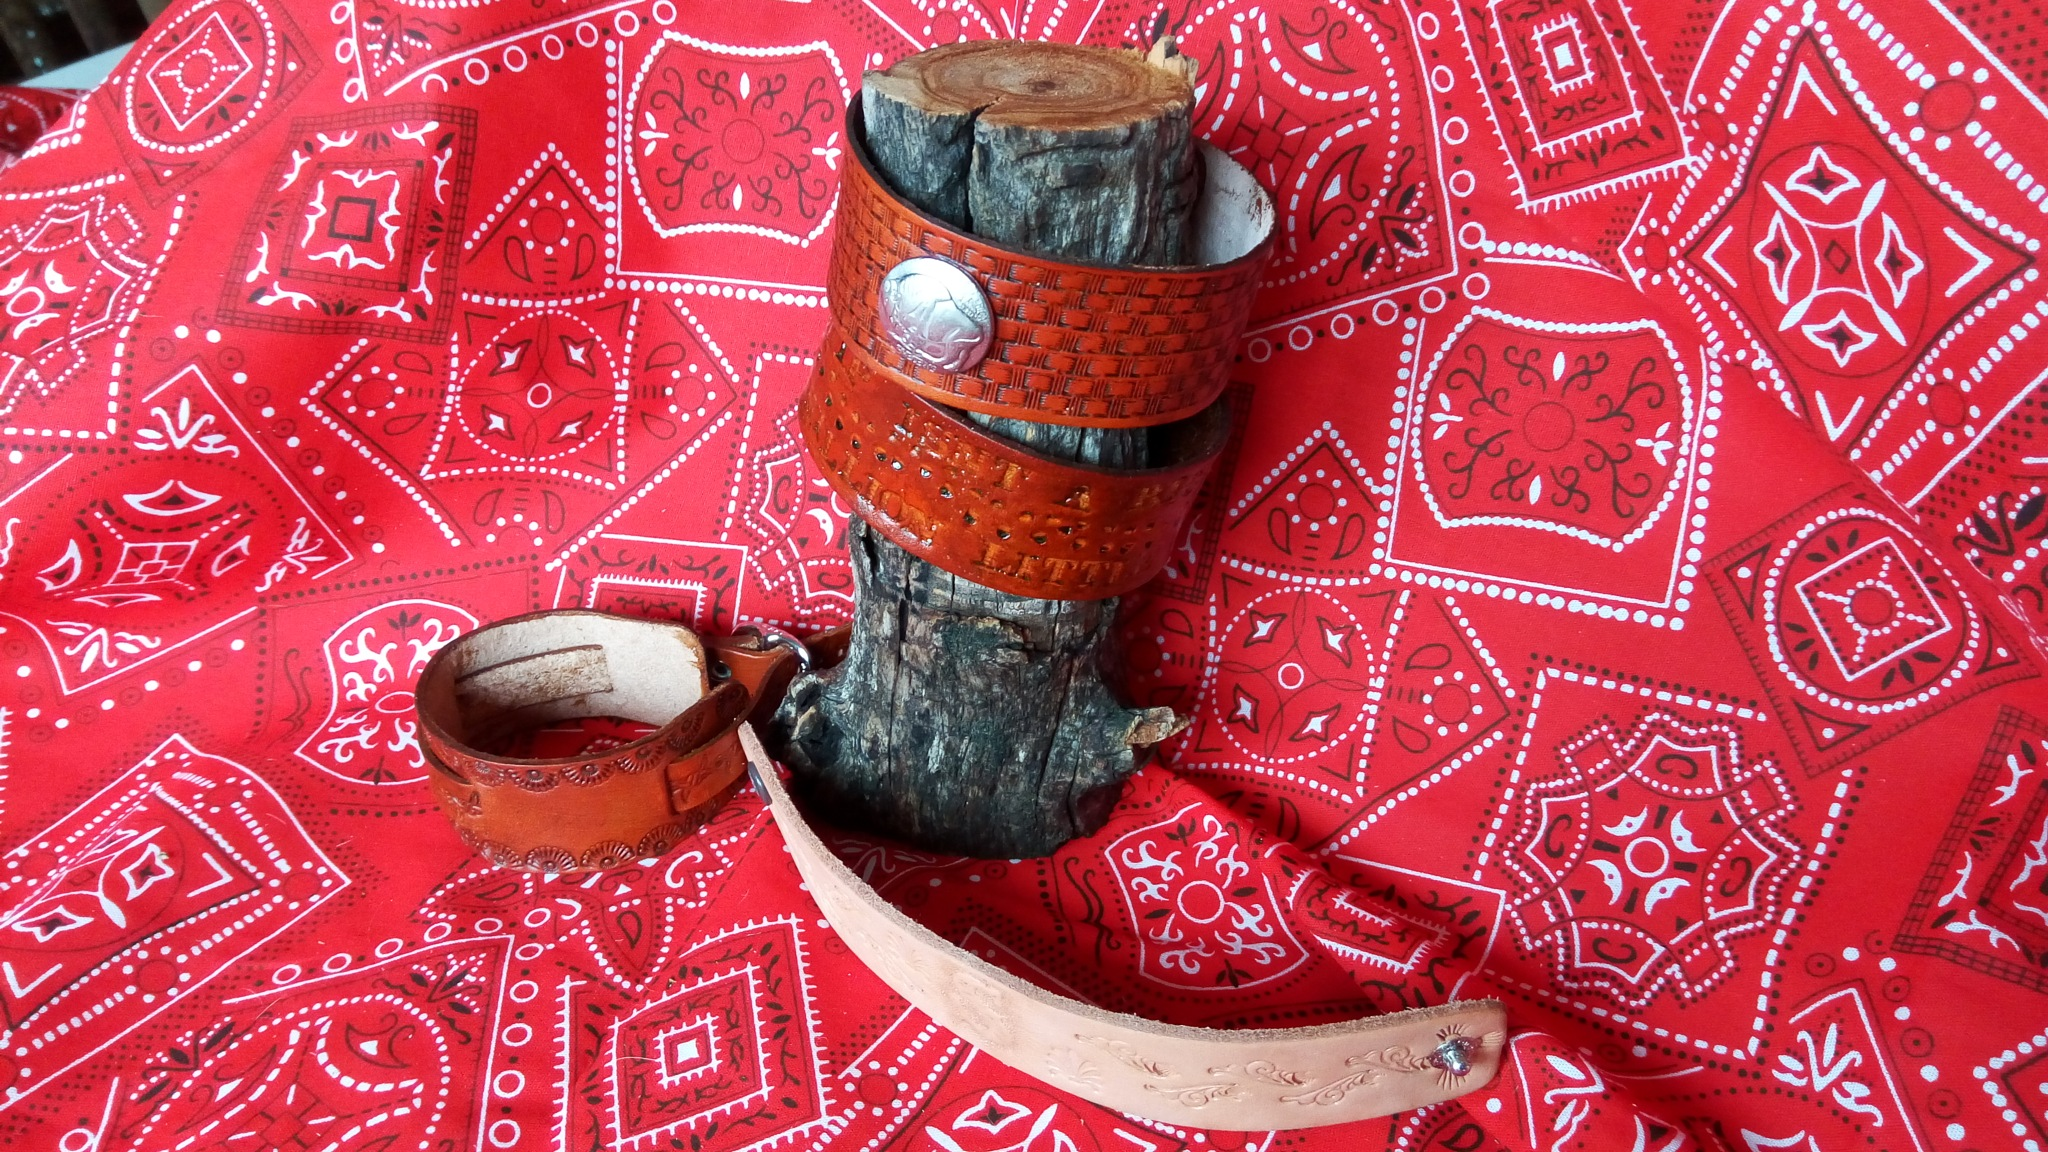 Wristbelts;)  by tinymouse